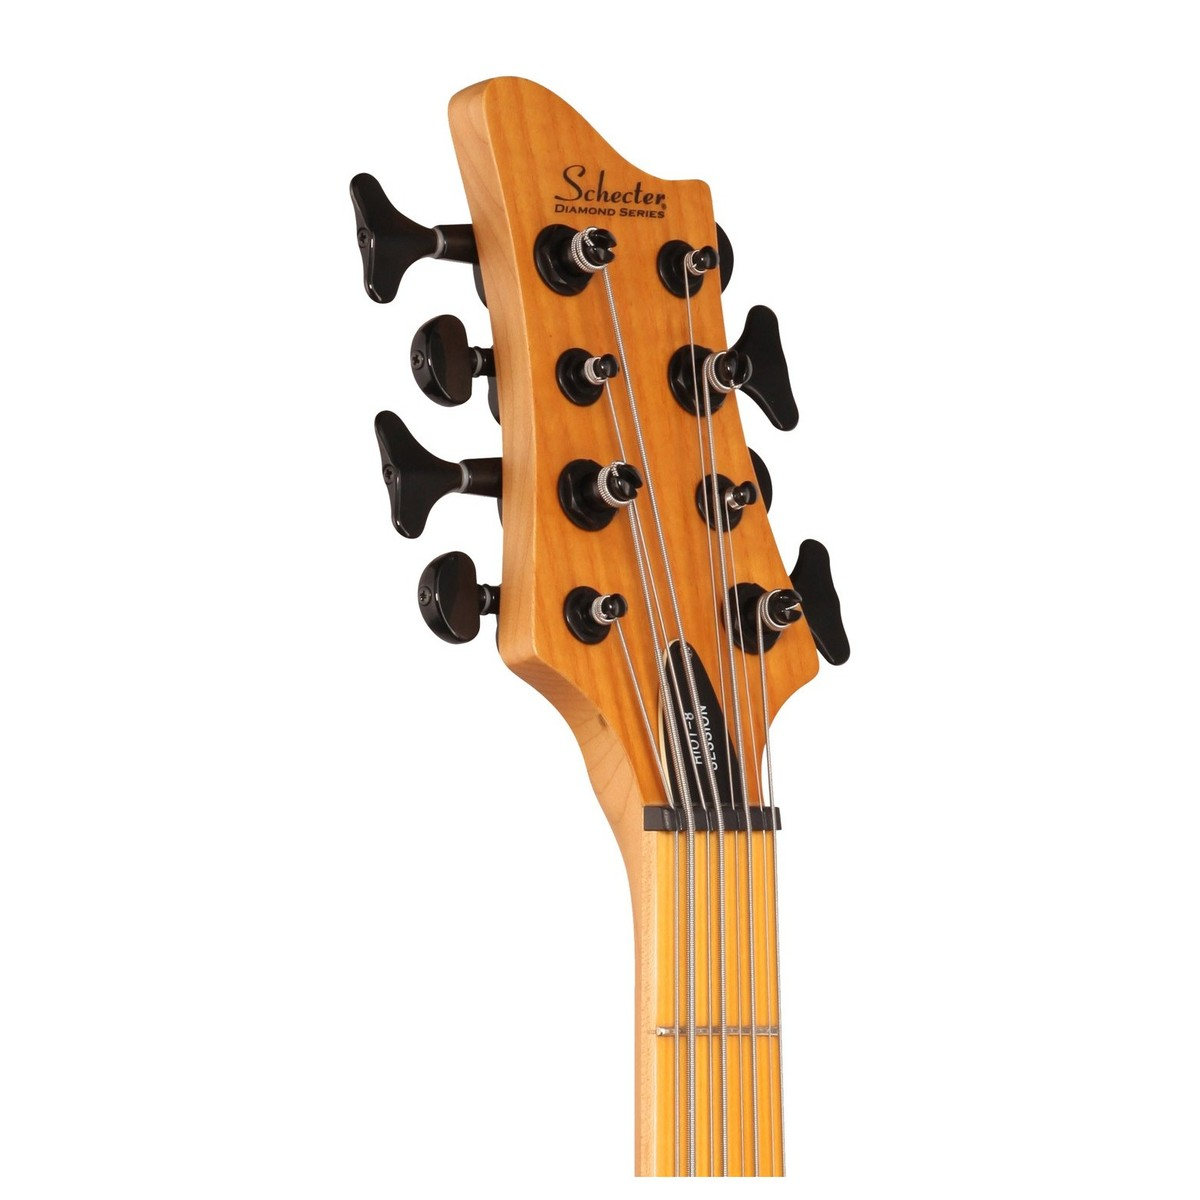 schecter riot session 8 electric bass guitar aged natural satin at gear4music. Black Bedroom Furniture Sets. Home Design Ideas